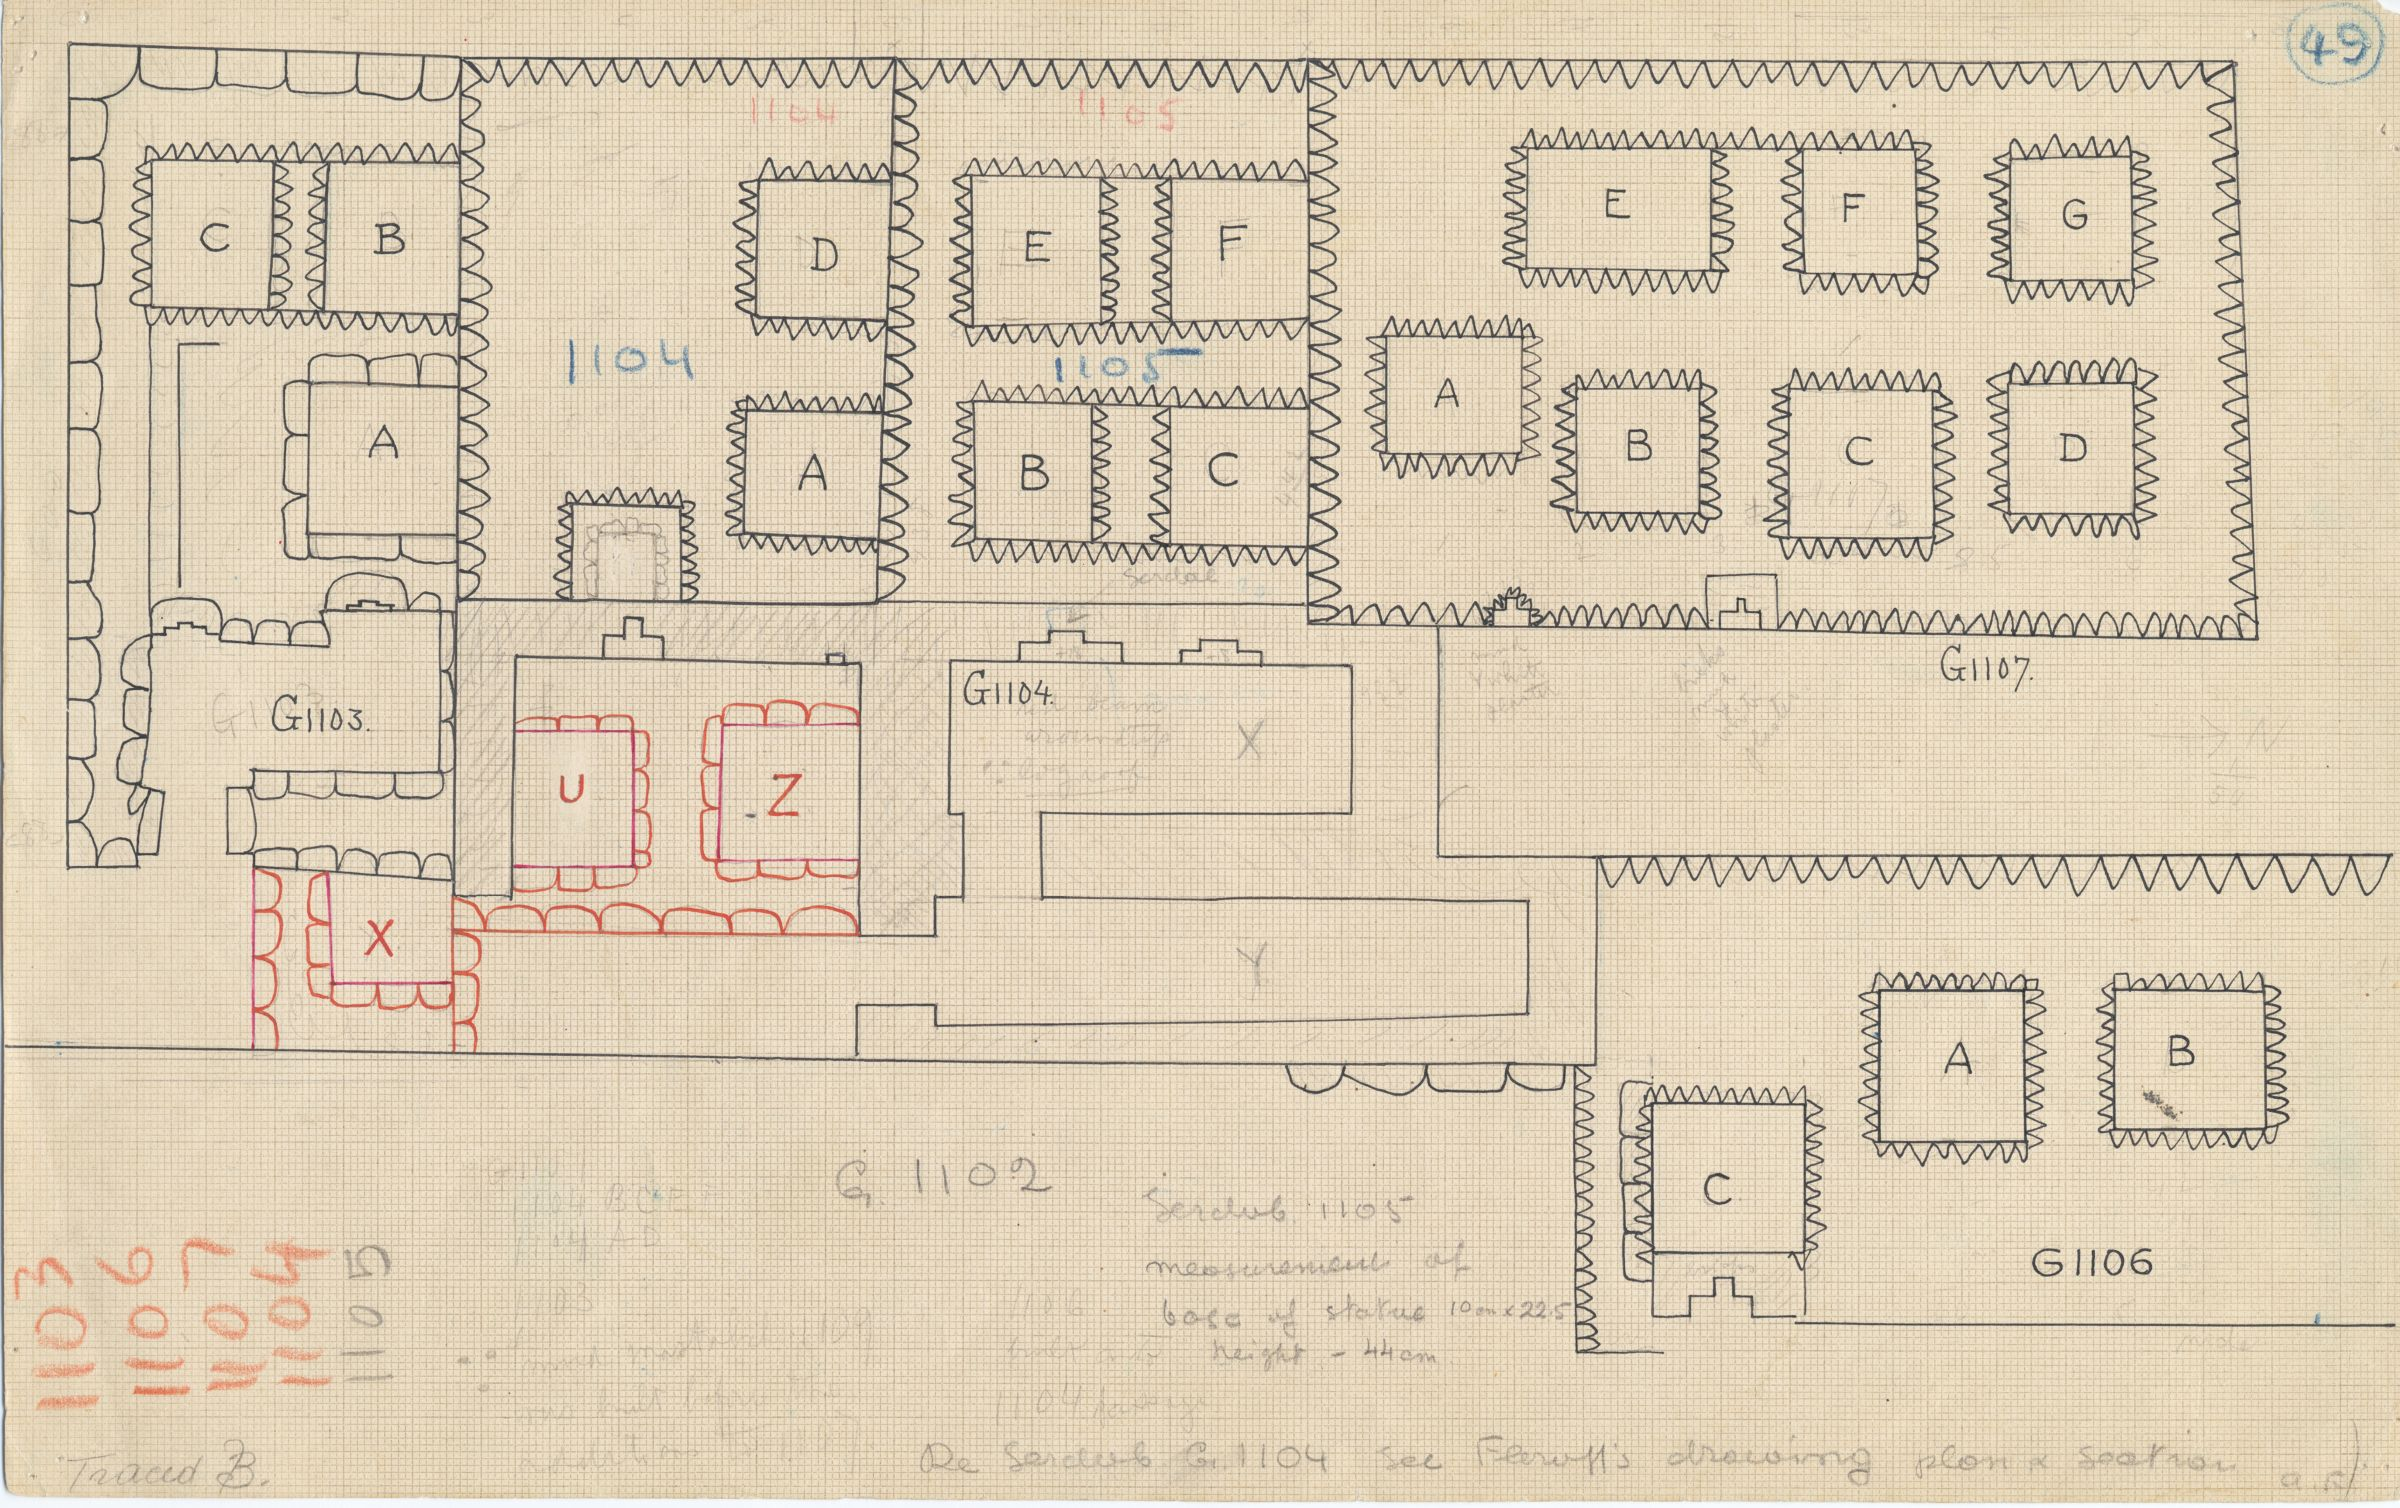 Maps and plans: Plan of G 1103, G 1104+1105, G 1106, G 1107, with position of G 1102